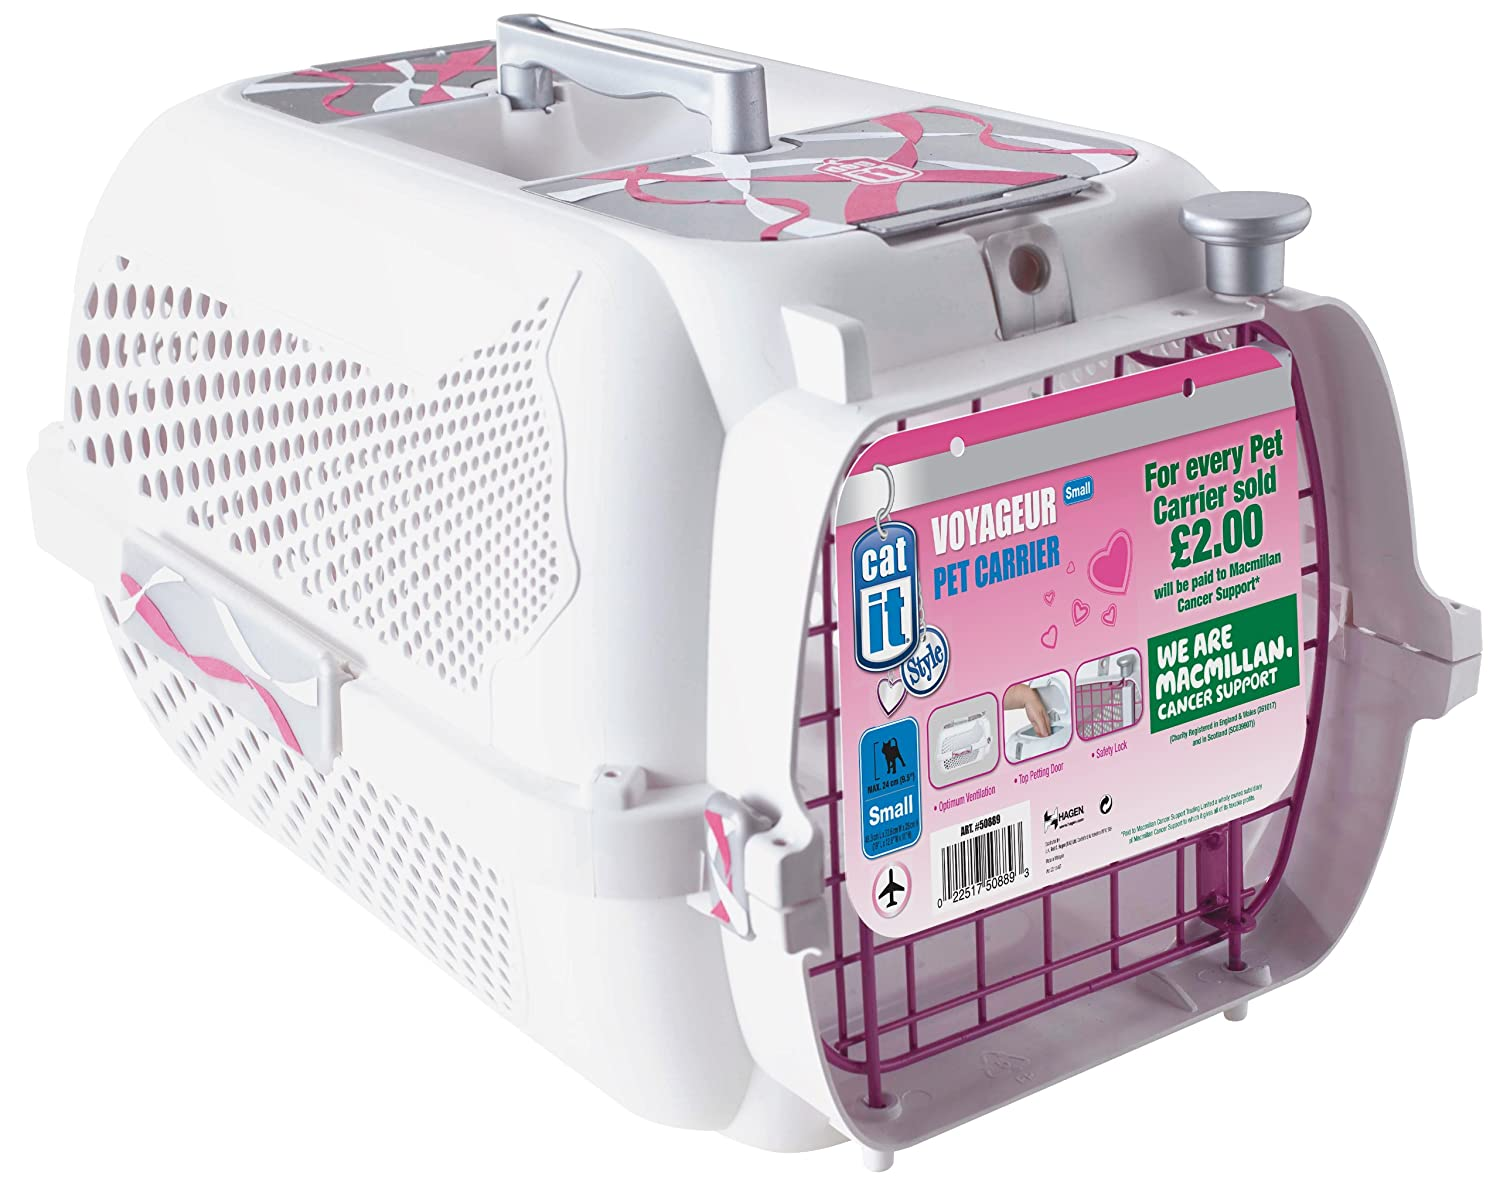 0acd70e3944 Amazon.com : Catit Style Pink Ribbon Voyager, White - Small : Pet Carriers  : Pet Supplies